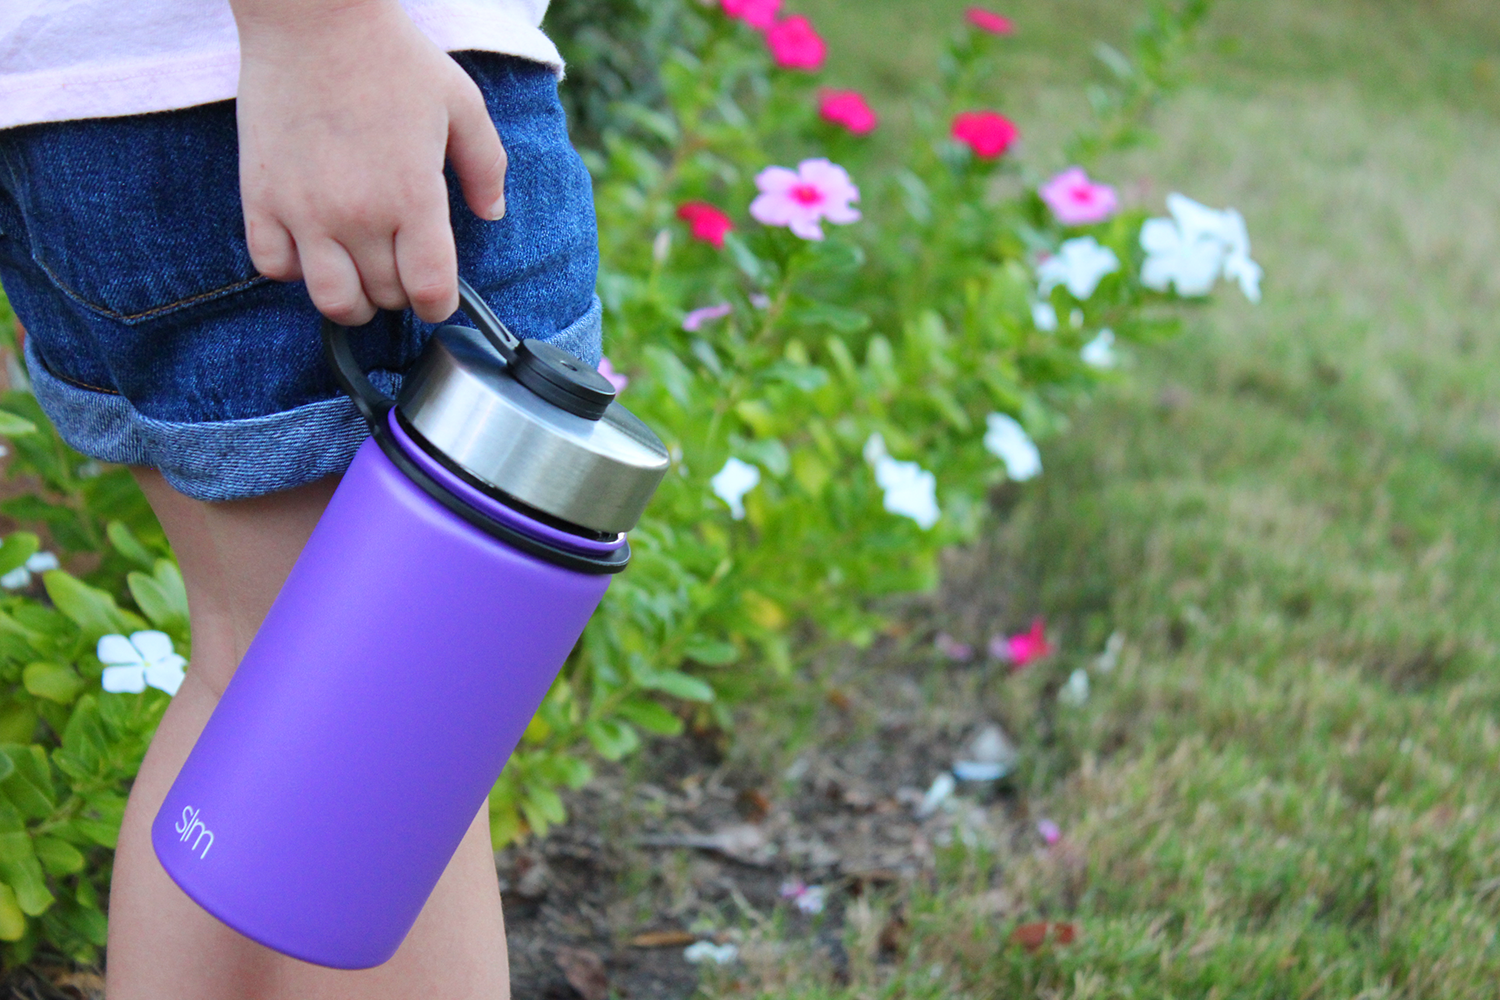 Little girl holding a Simple Modern 14oz Summit Bottle in lilac purple.